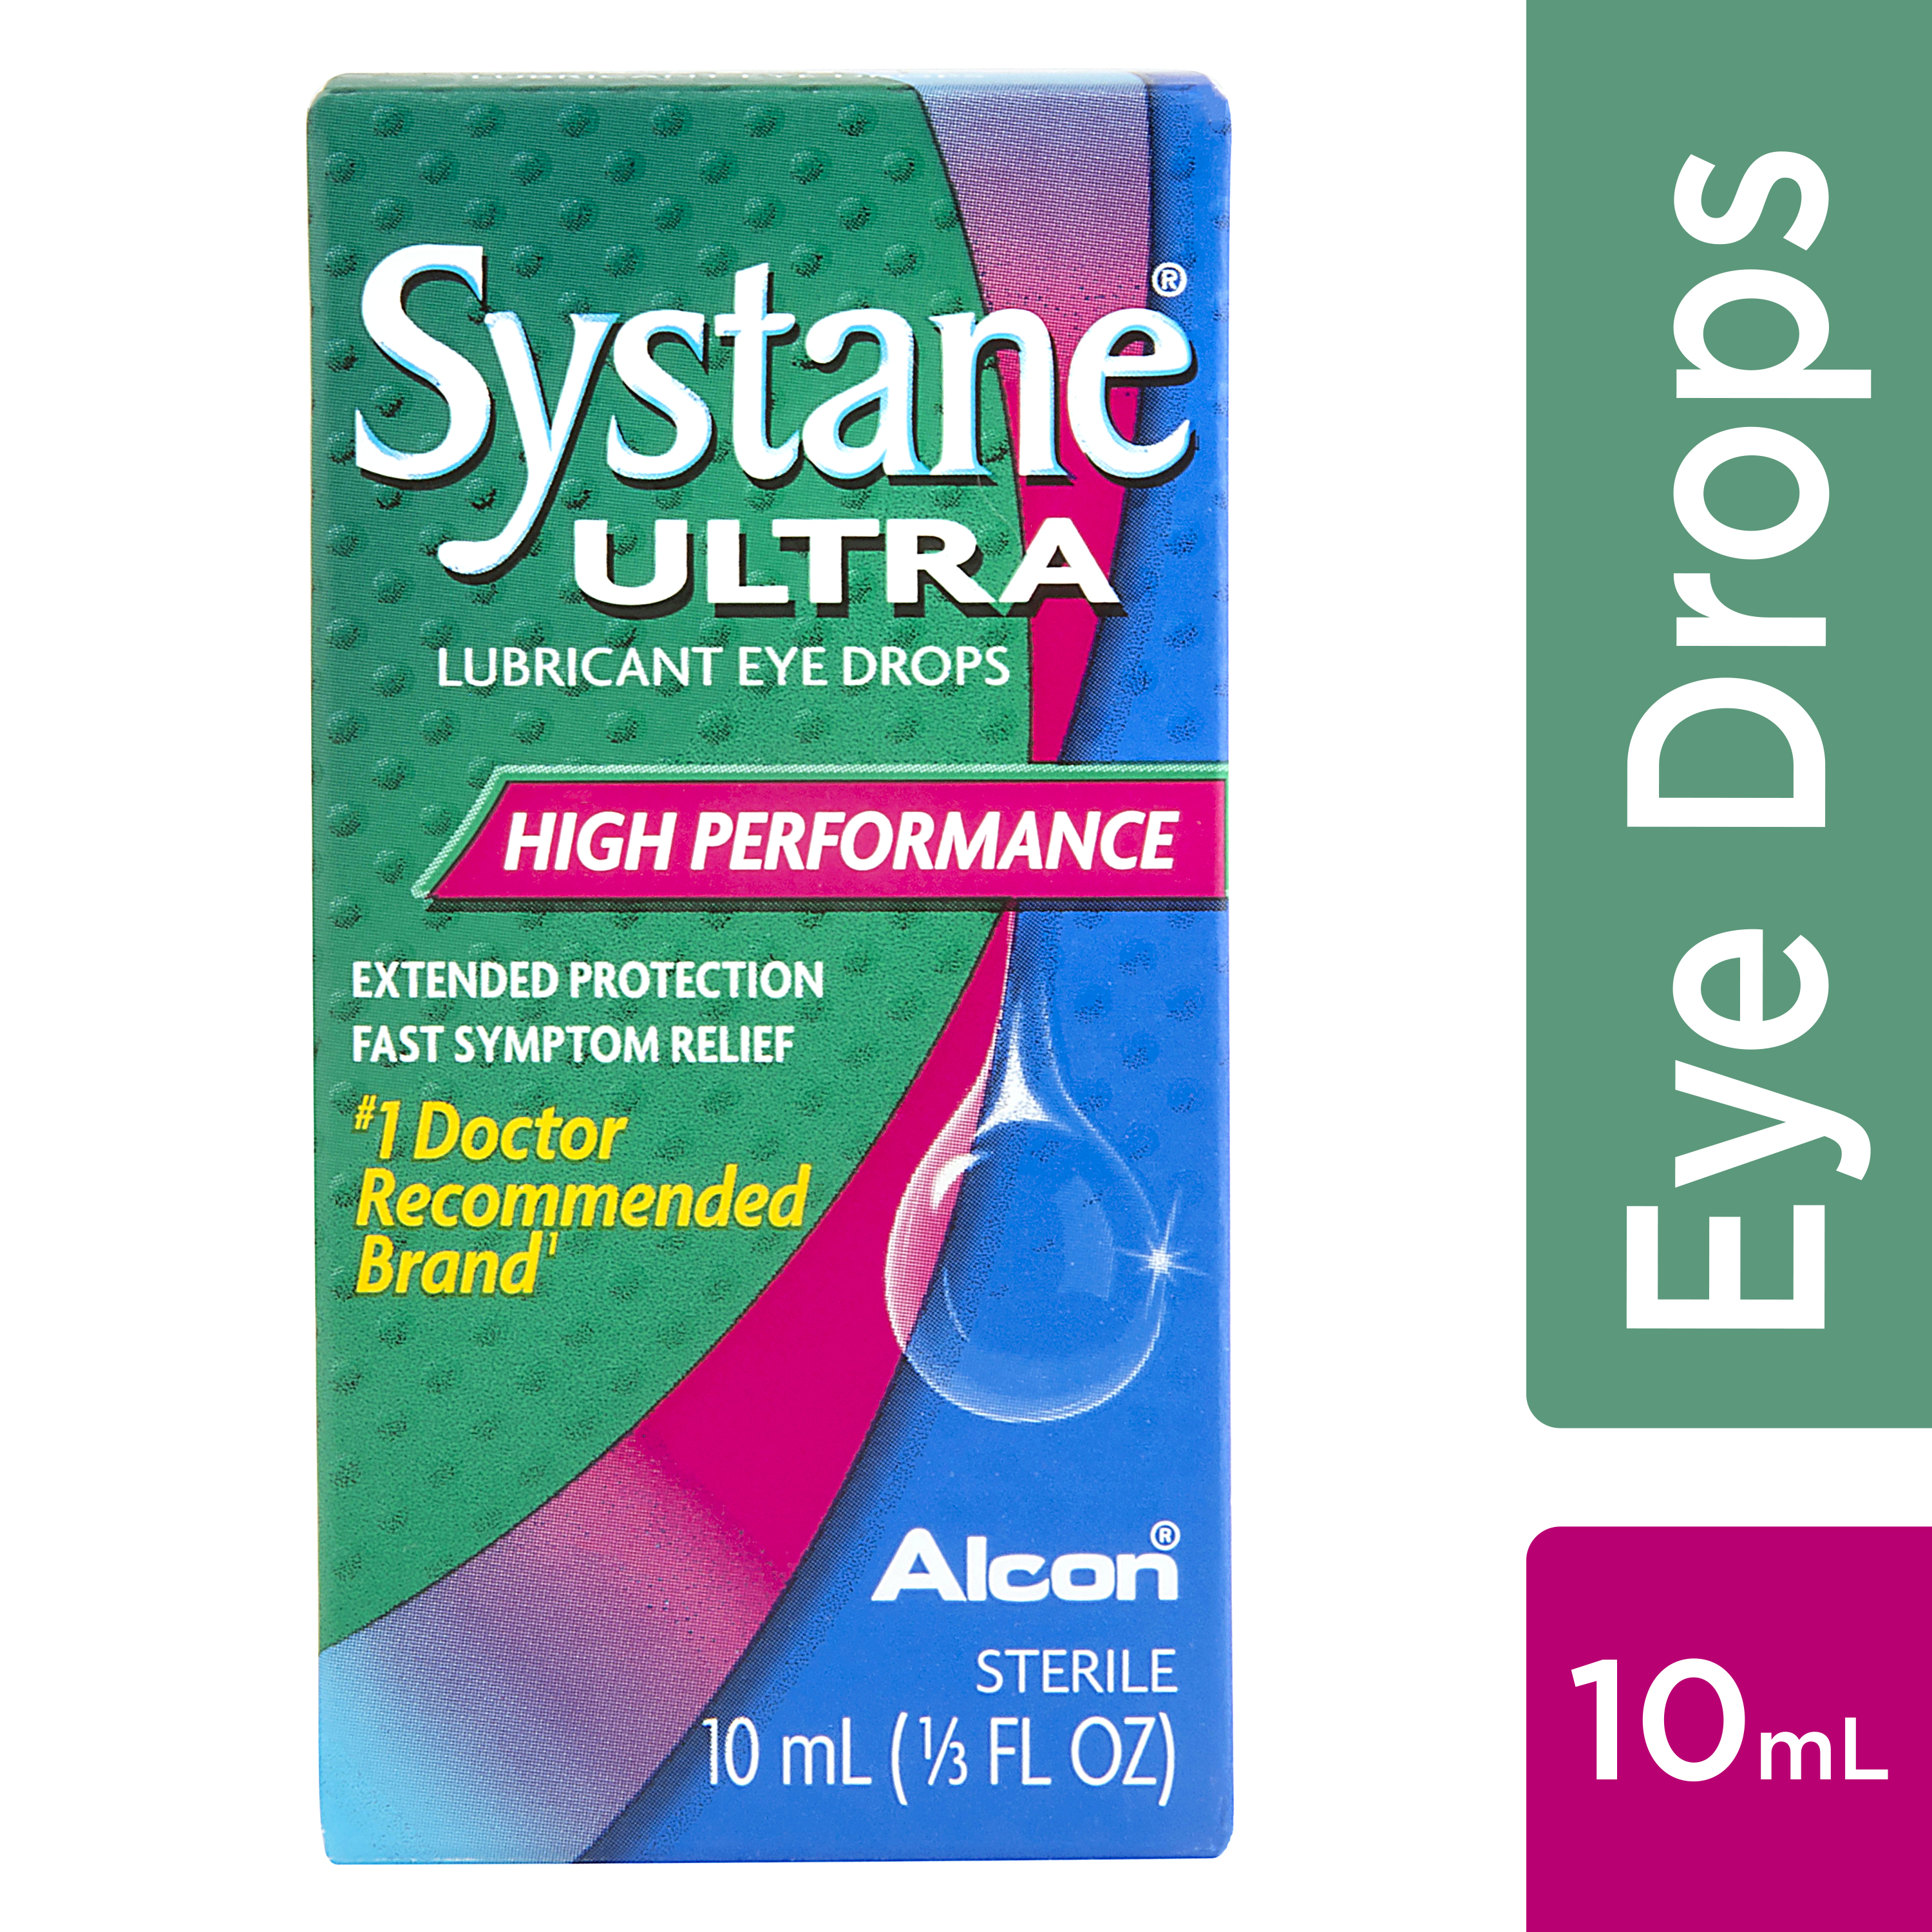 Systane Ultra Lubricant Eye Drops High Performance, 0.33 FL OZ